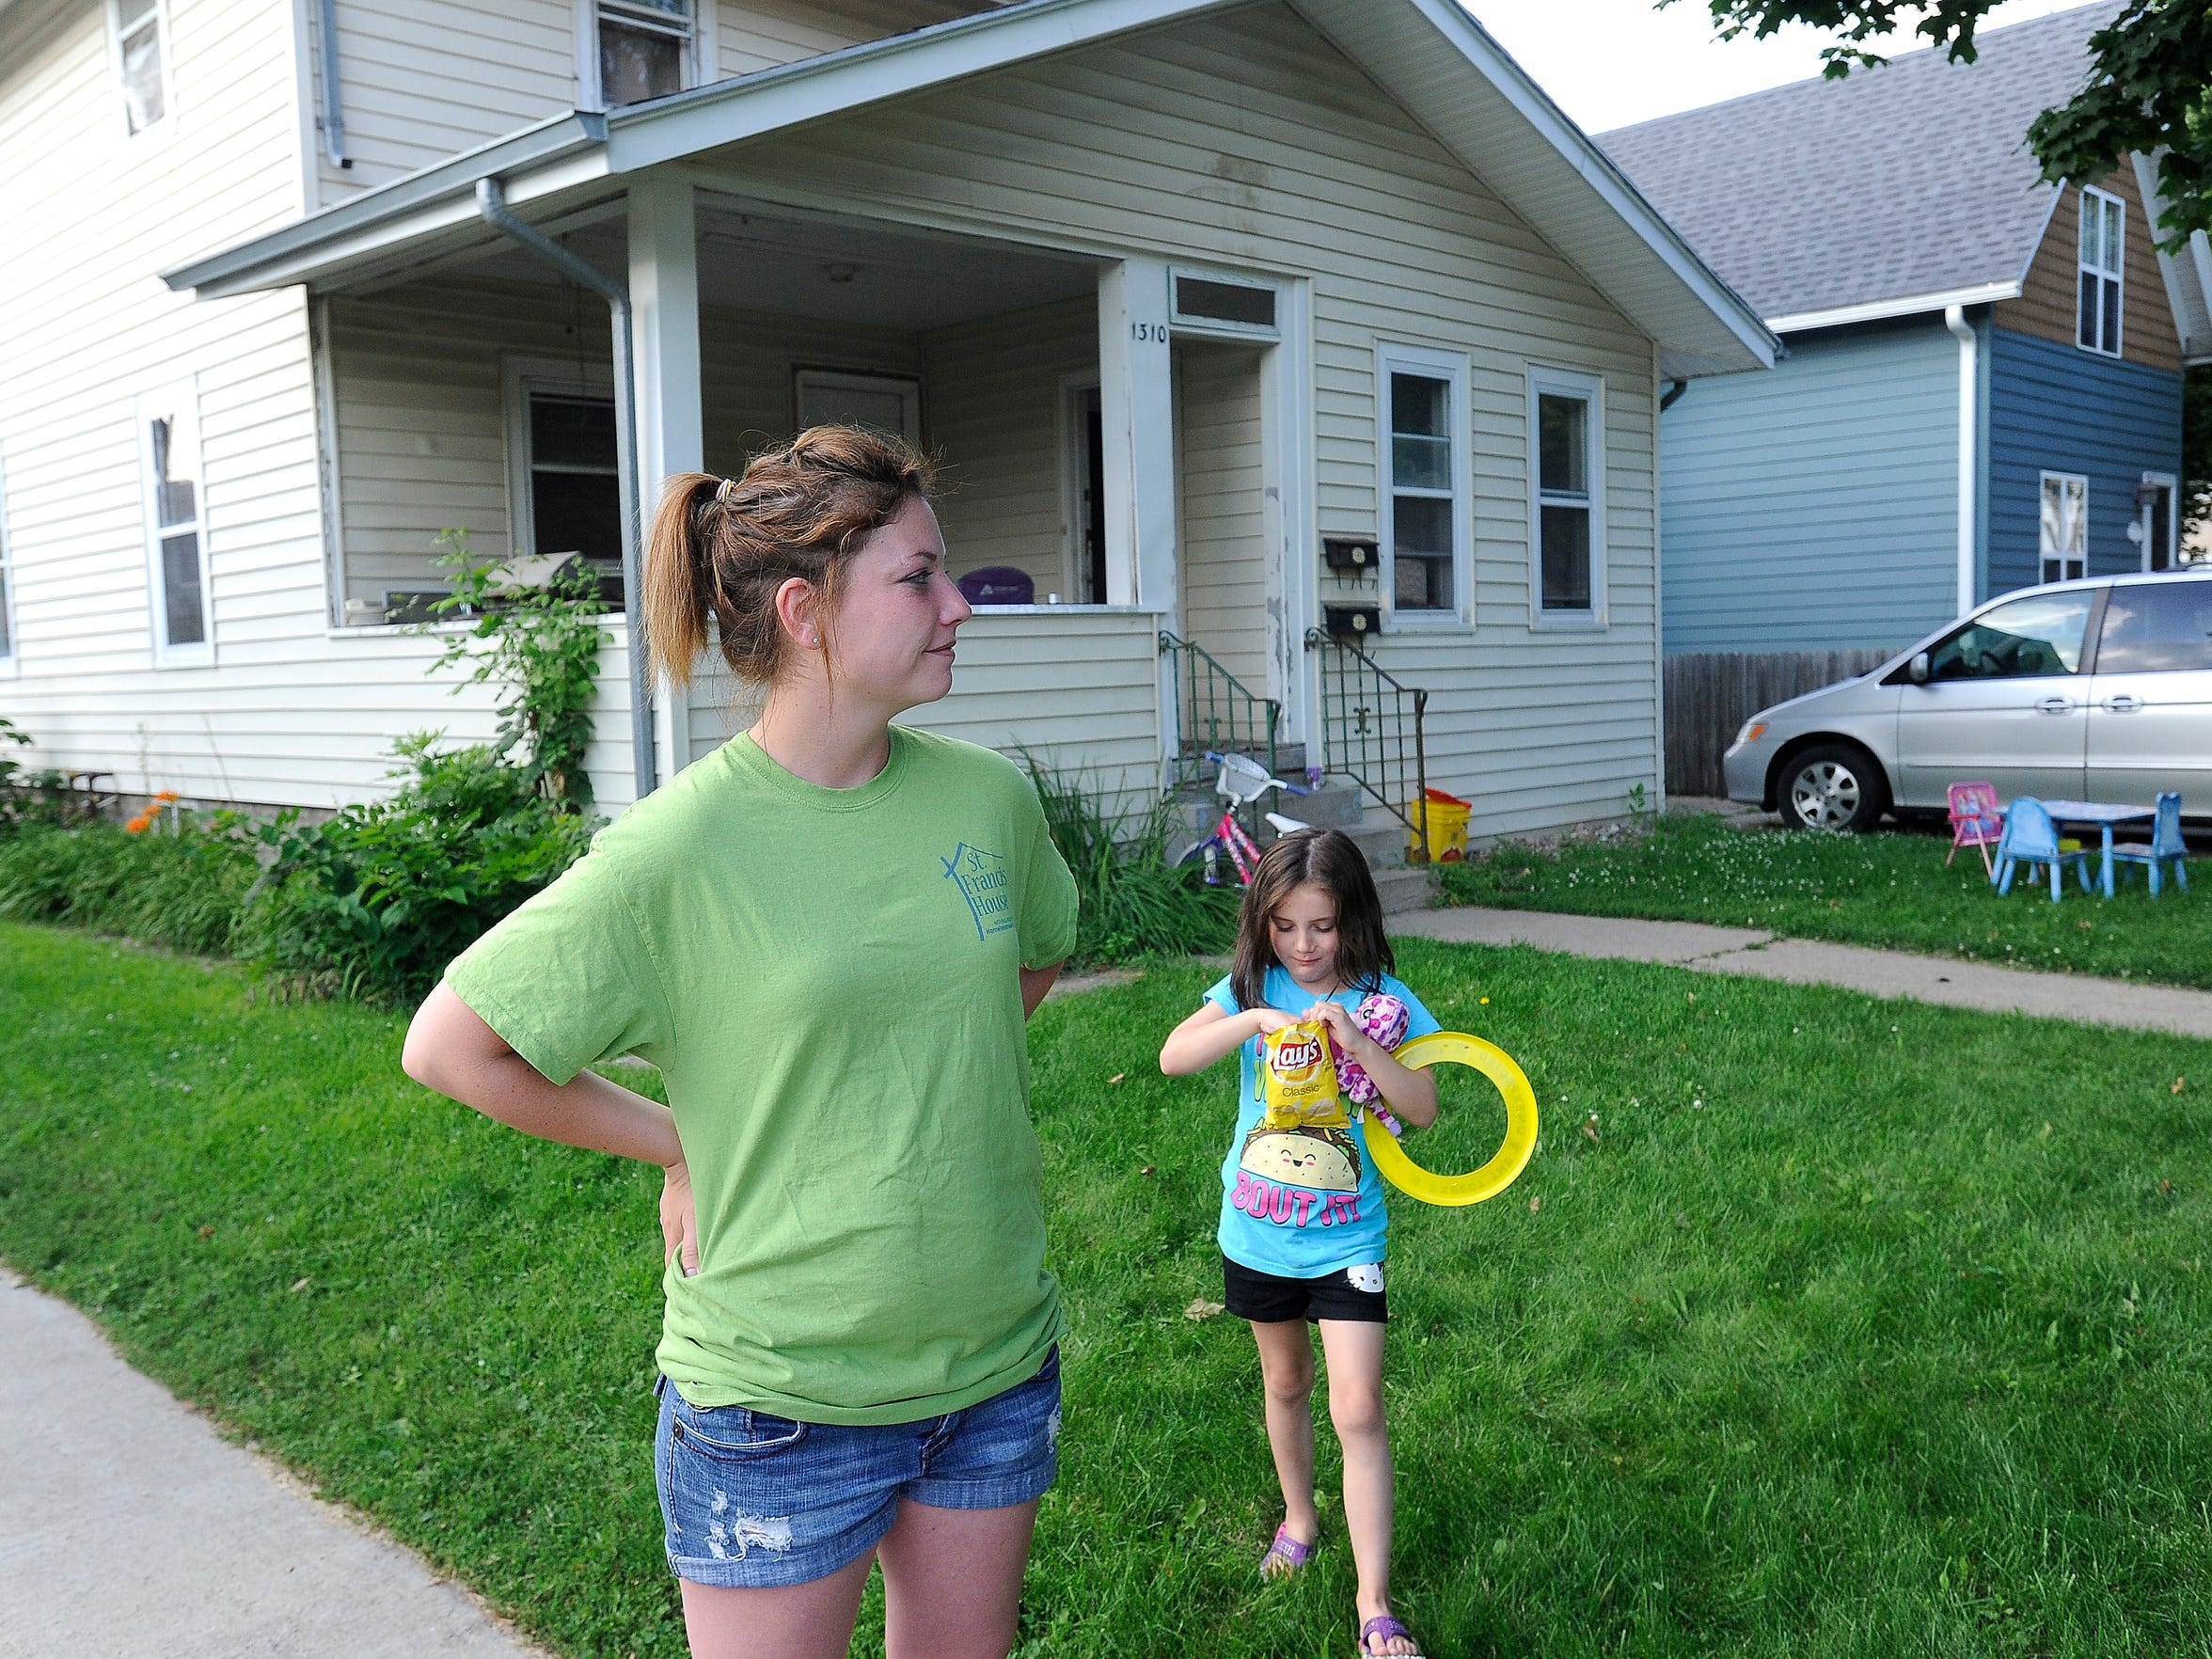 Allisha Hanson and her daughter Presley, 6, talk about living in the Whittier neighborhood in Sioux Falls, S.D., Thursday, July 9, 2015. Allisha works on the St. Francis House but they will be moving out of the Whittier neighborhood.